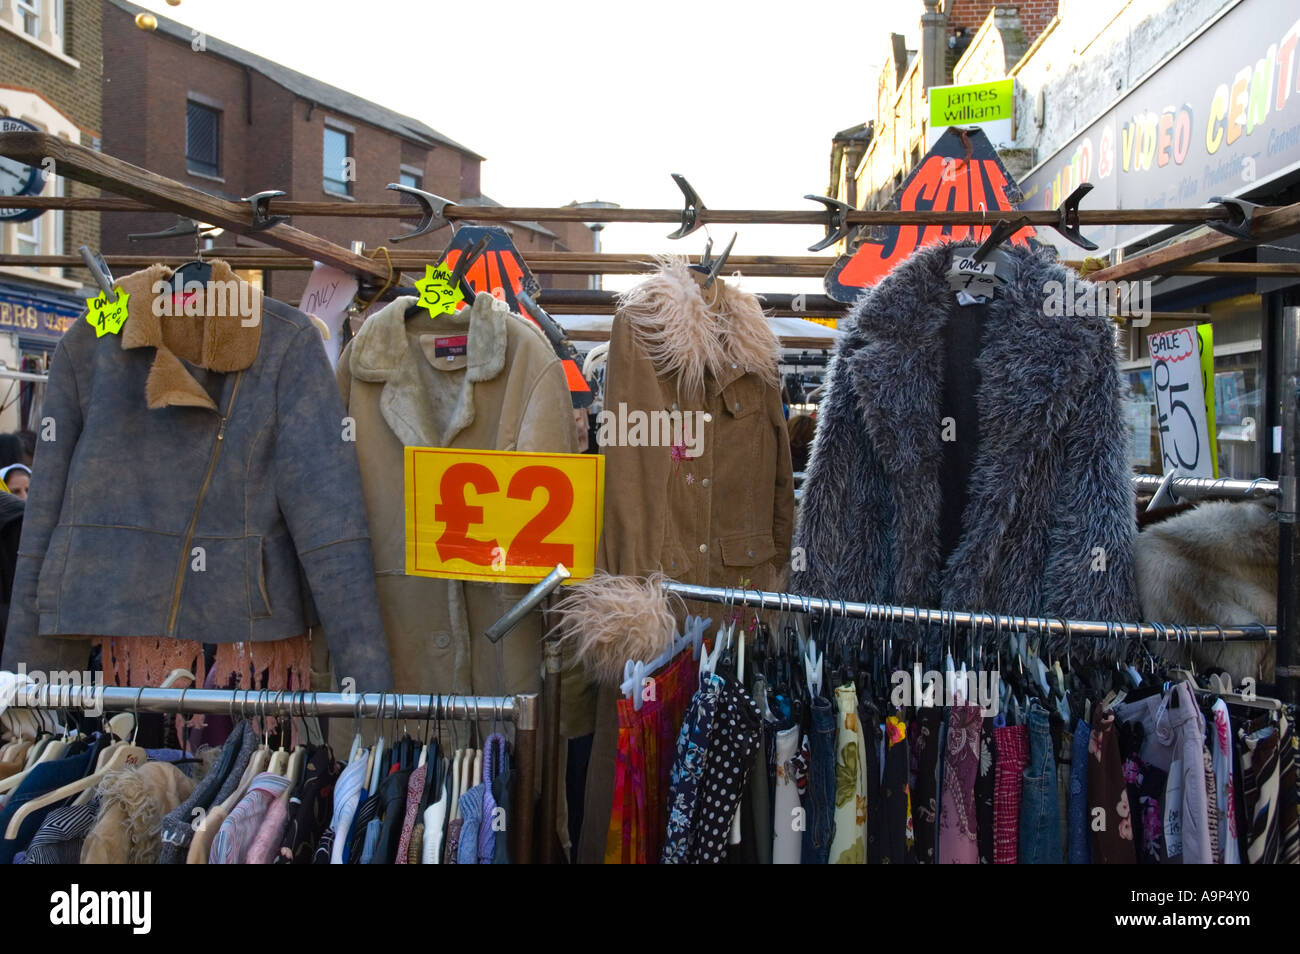 Cheap Clothing At Walthamstow Market In East London Capital Of ...